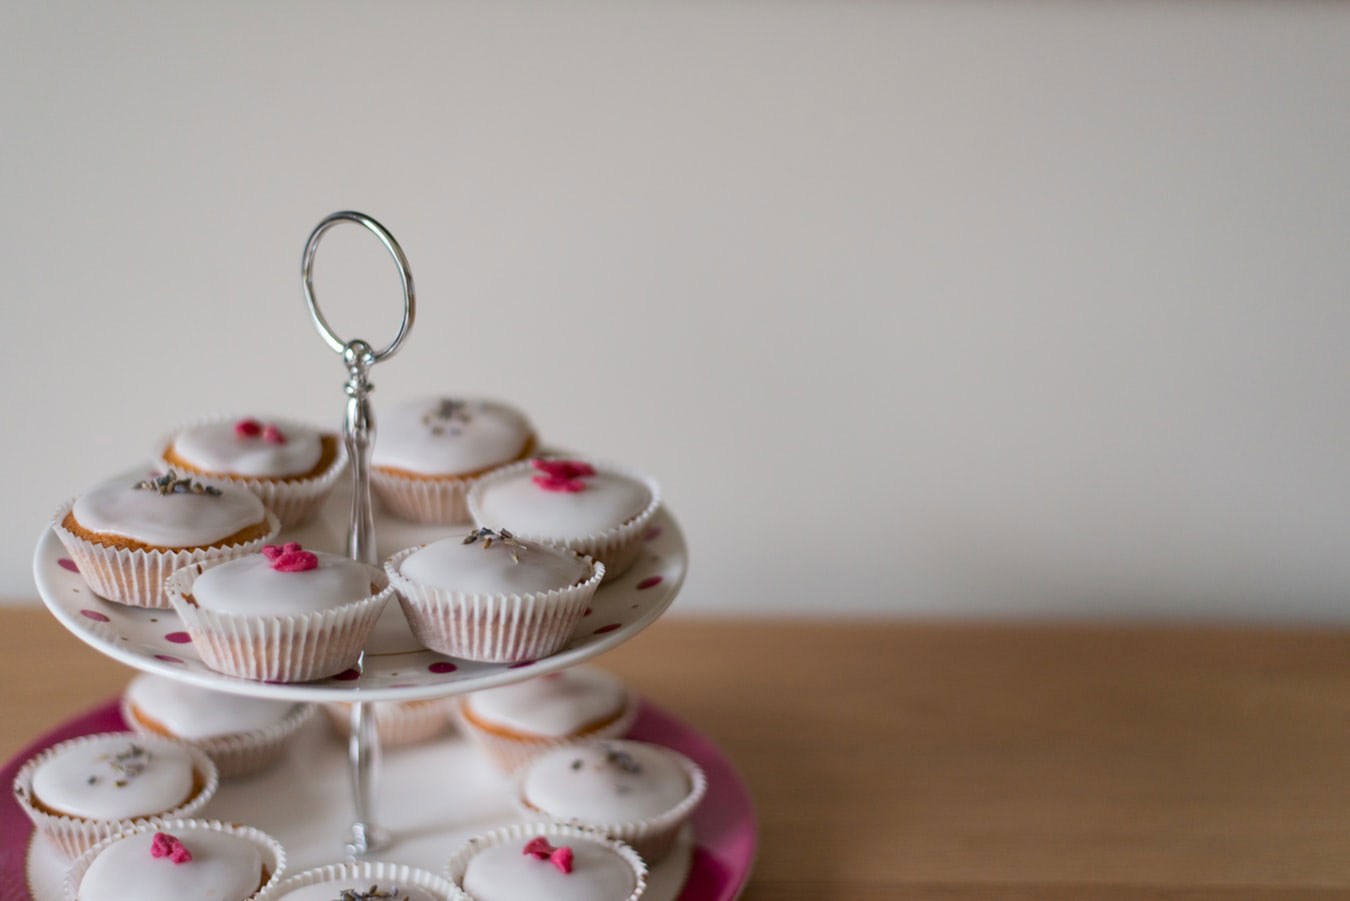 Cupcake Stand | How To Throw The Perfect High Tea Party This Spring